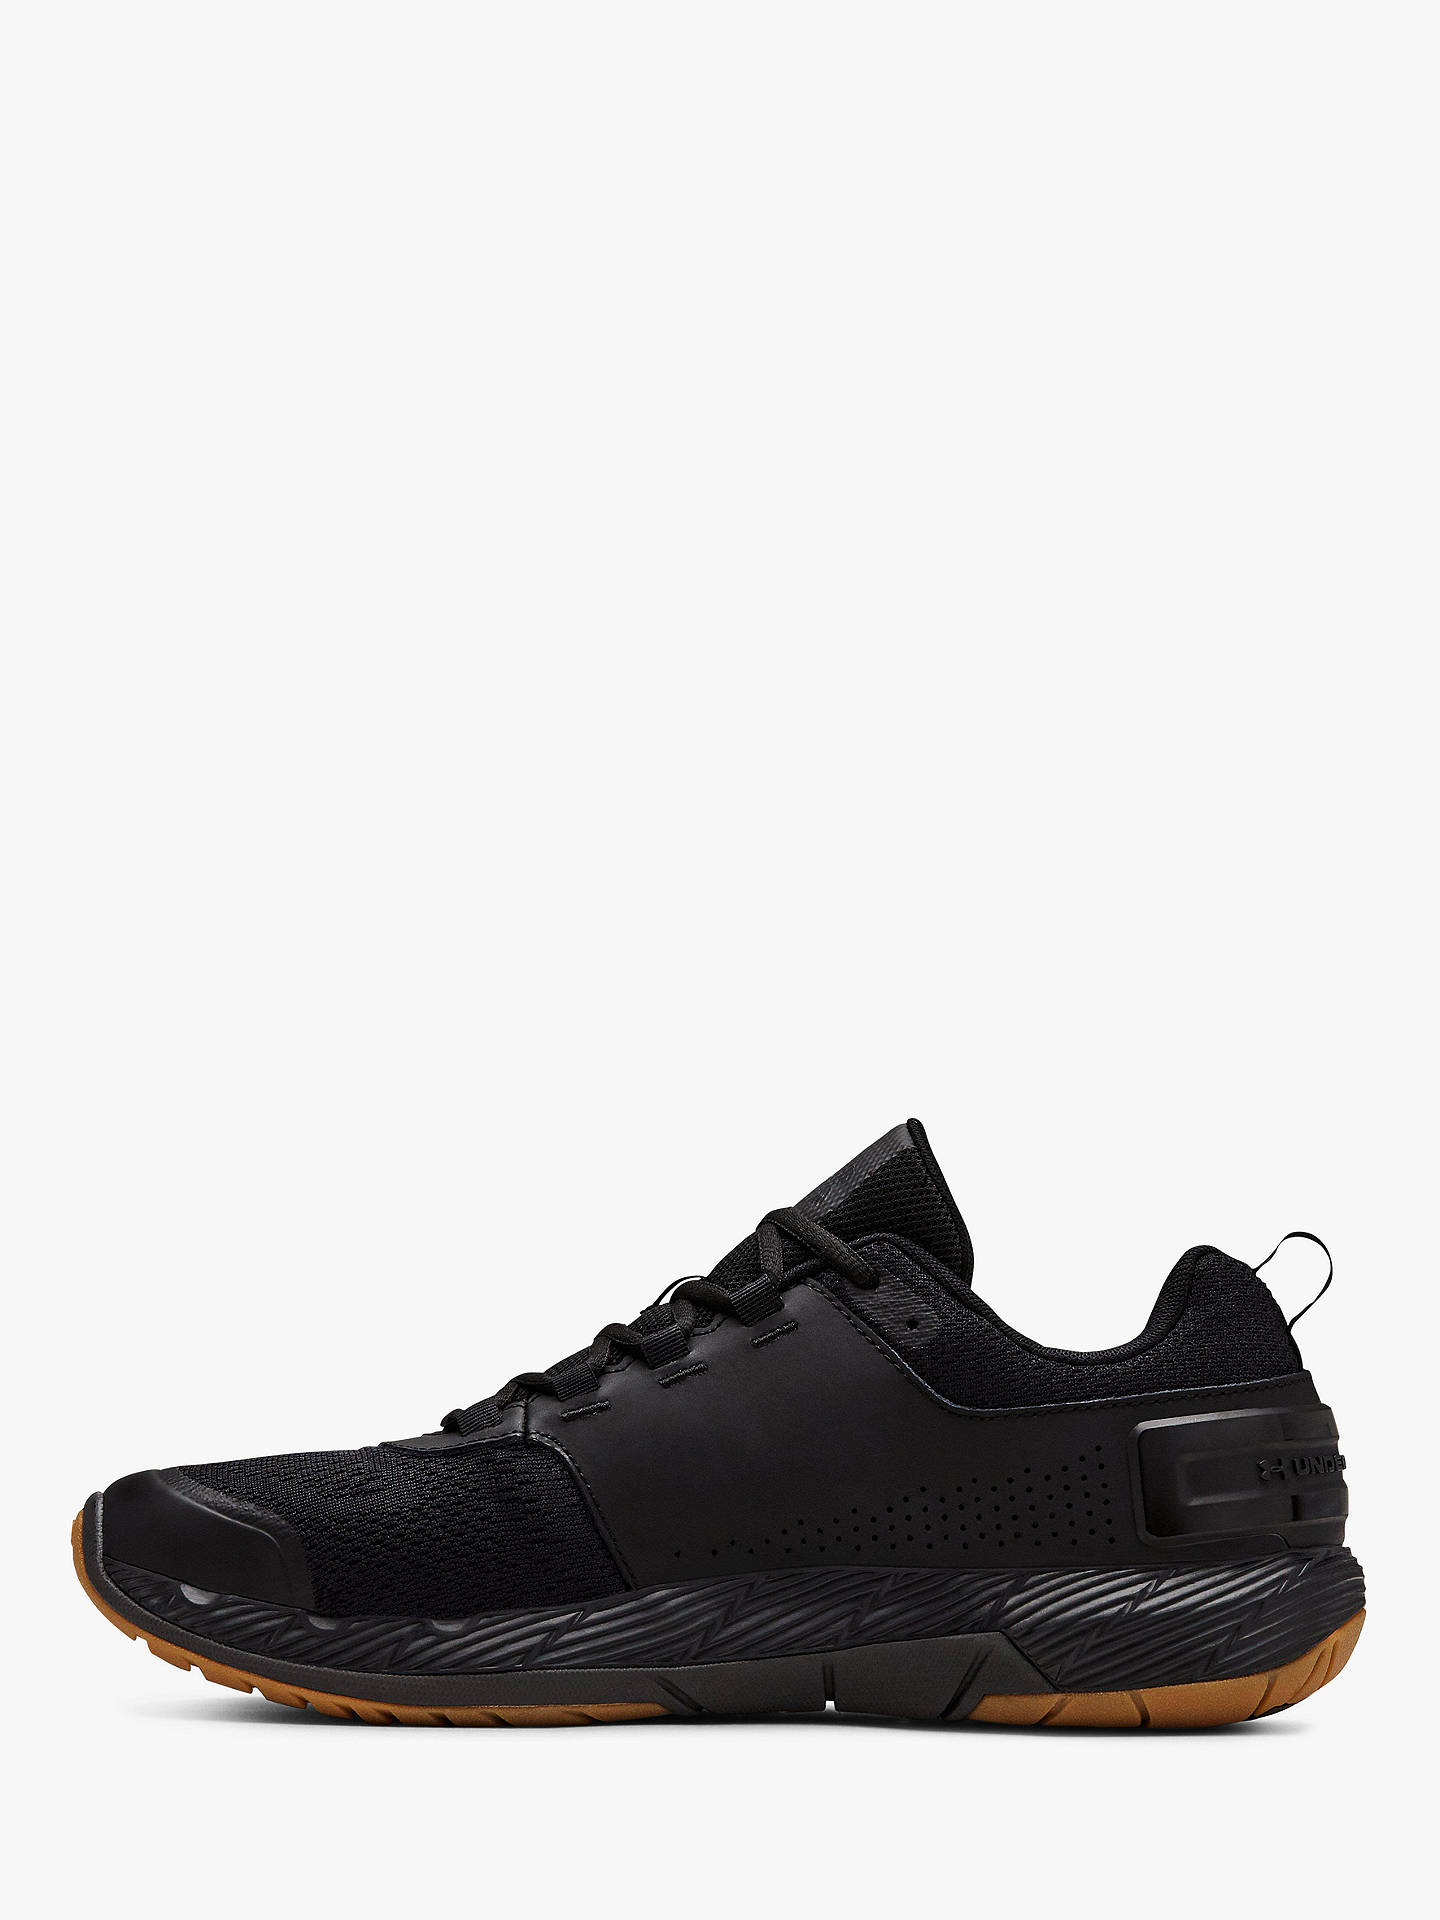 the latest cc936 17480 Under Armour Commit TR EX Men's Trainers, Black at John ...